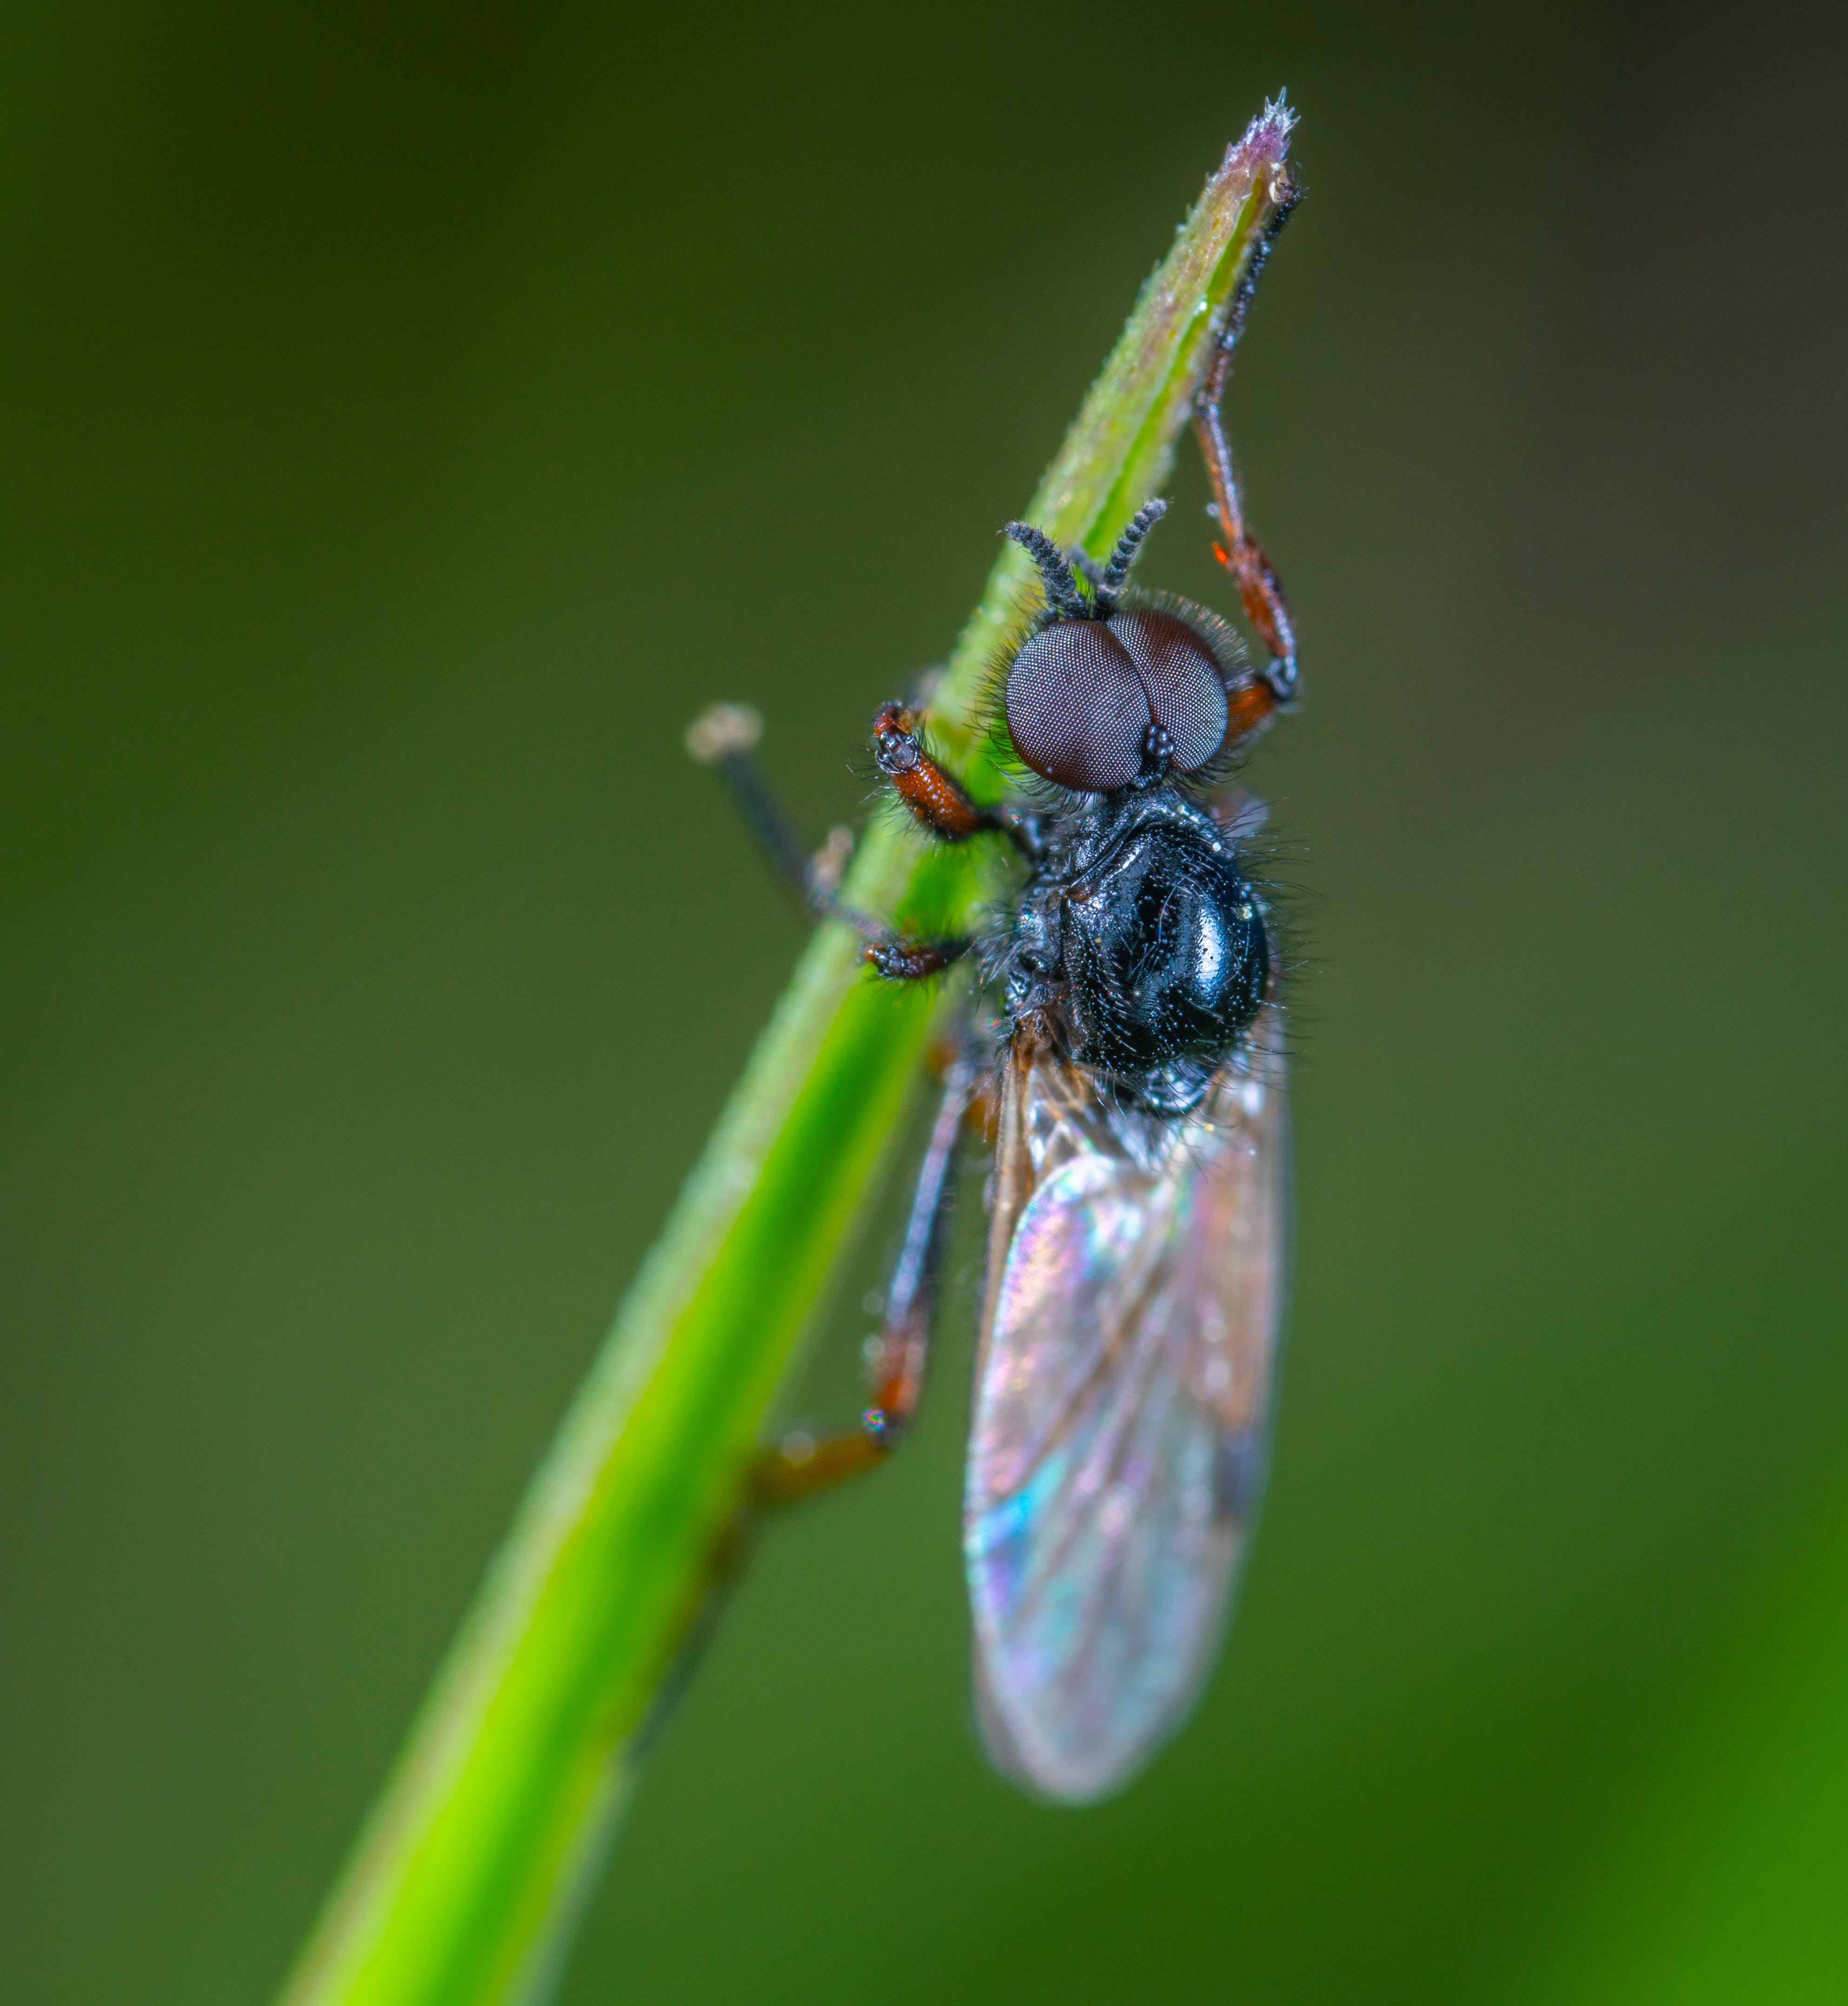 Black Fly Close-up Photography